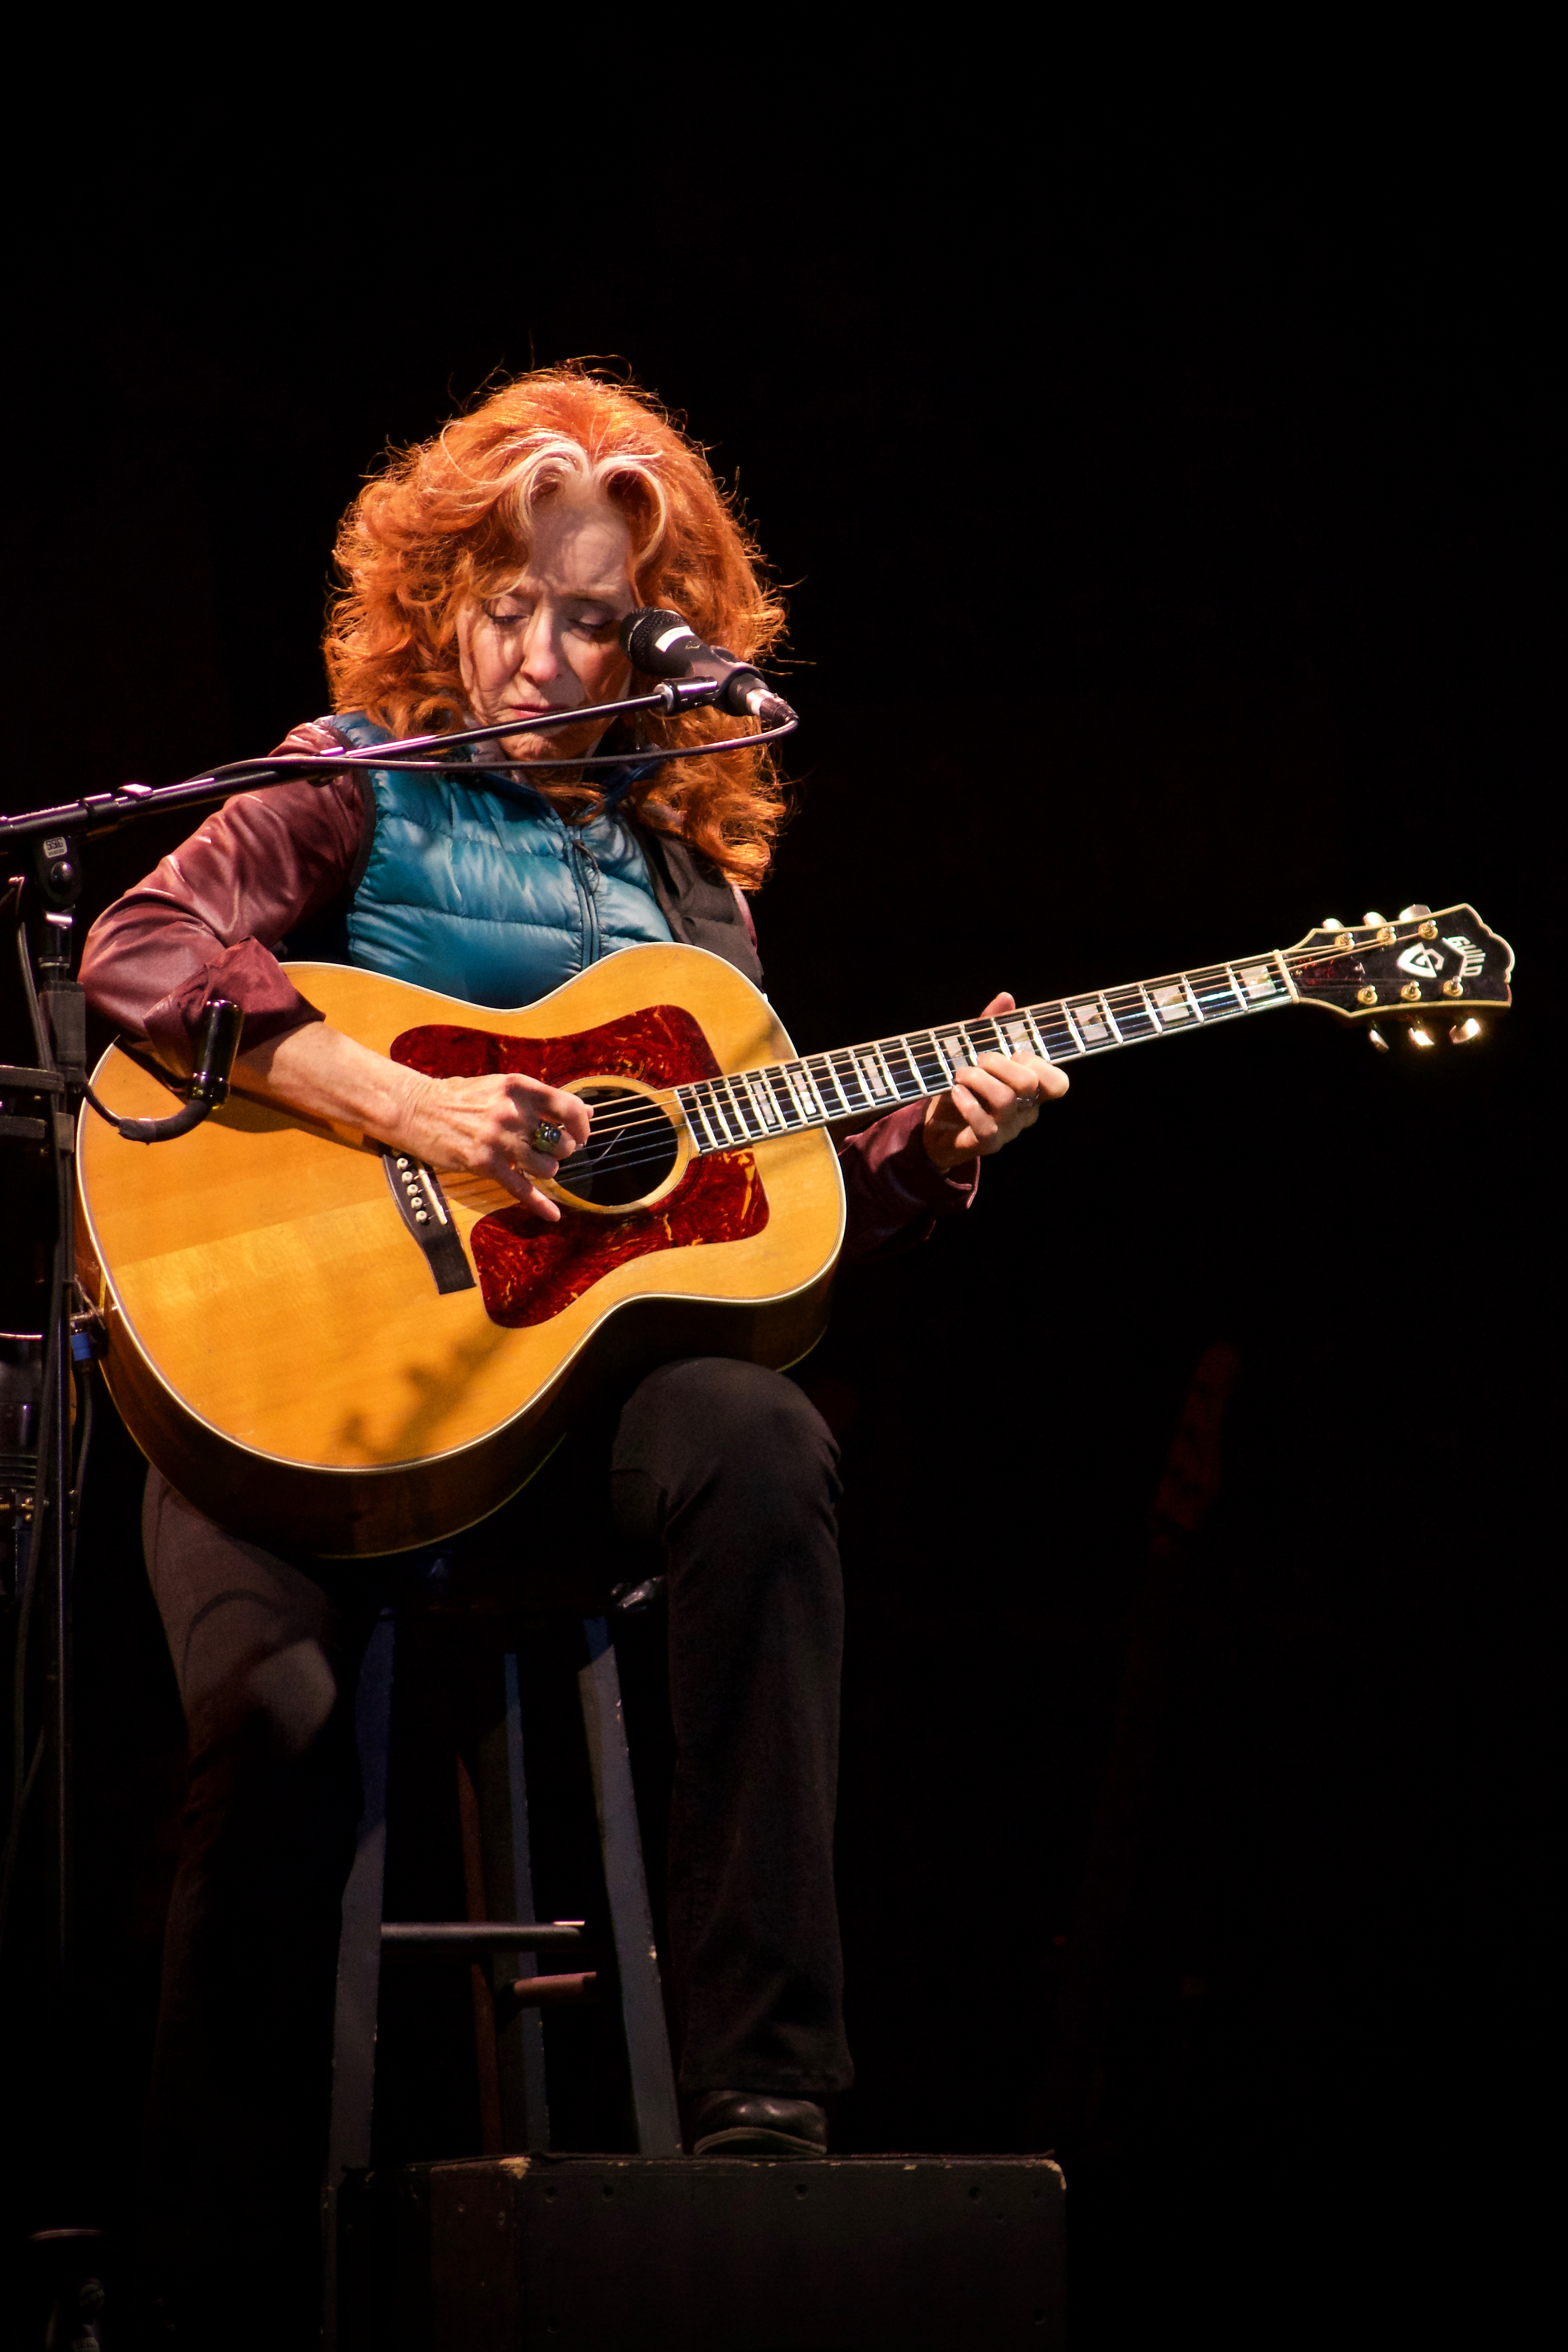 Bonnie Raitt1- Telluride, CO September 2017